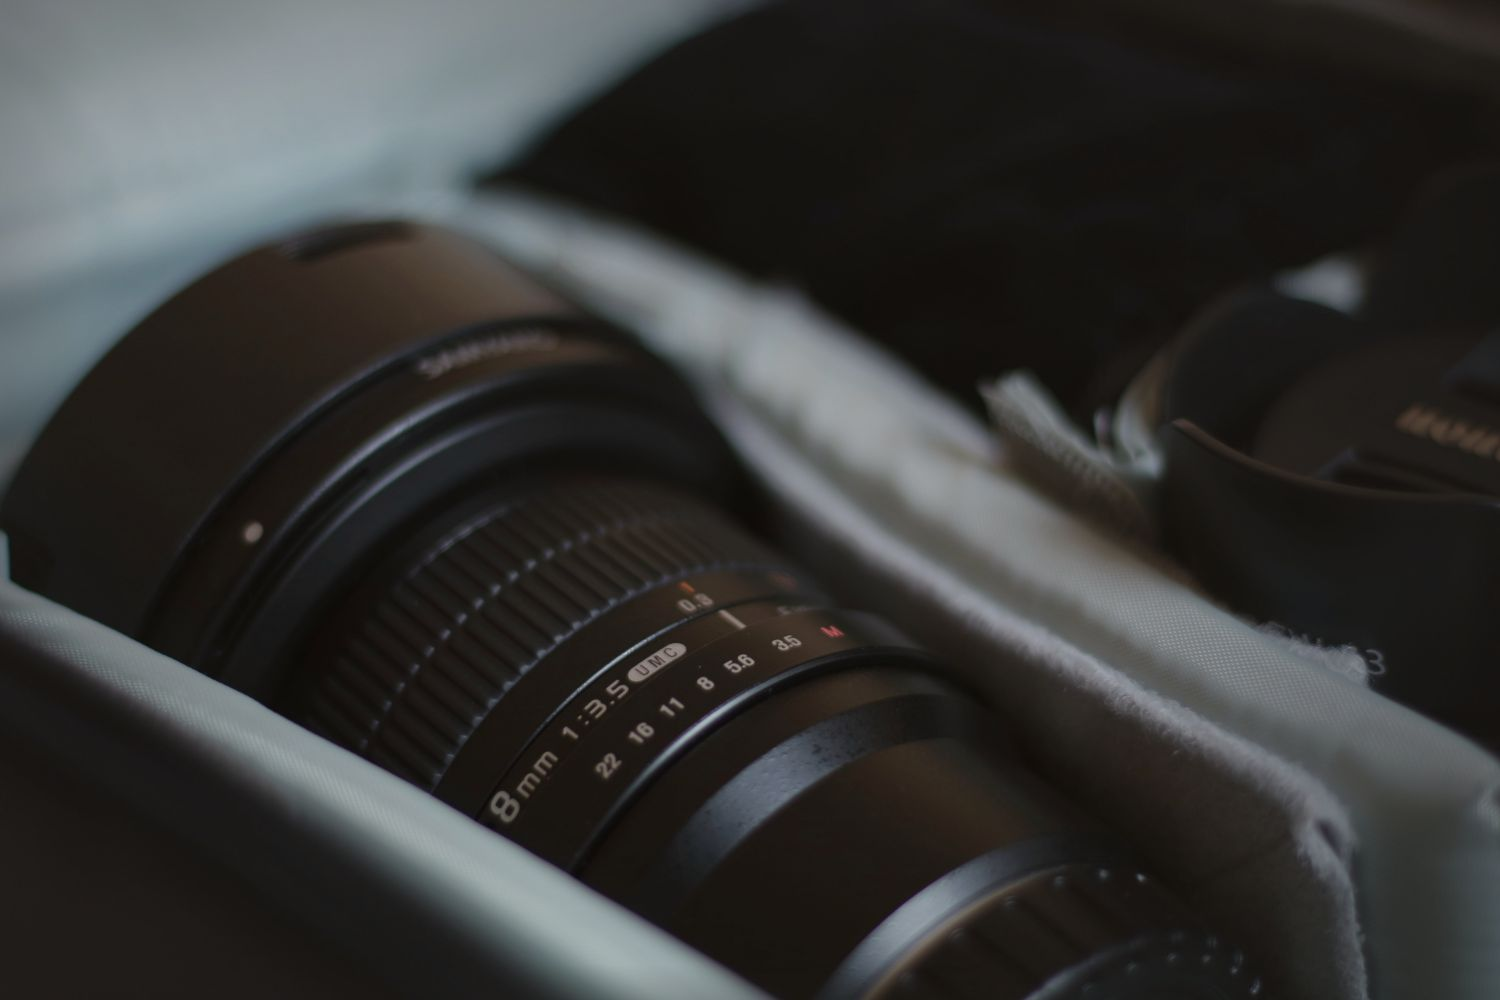 With different lenses you can take a whole new array of photos